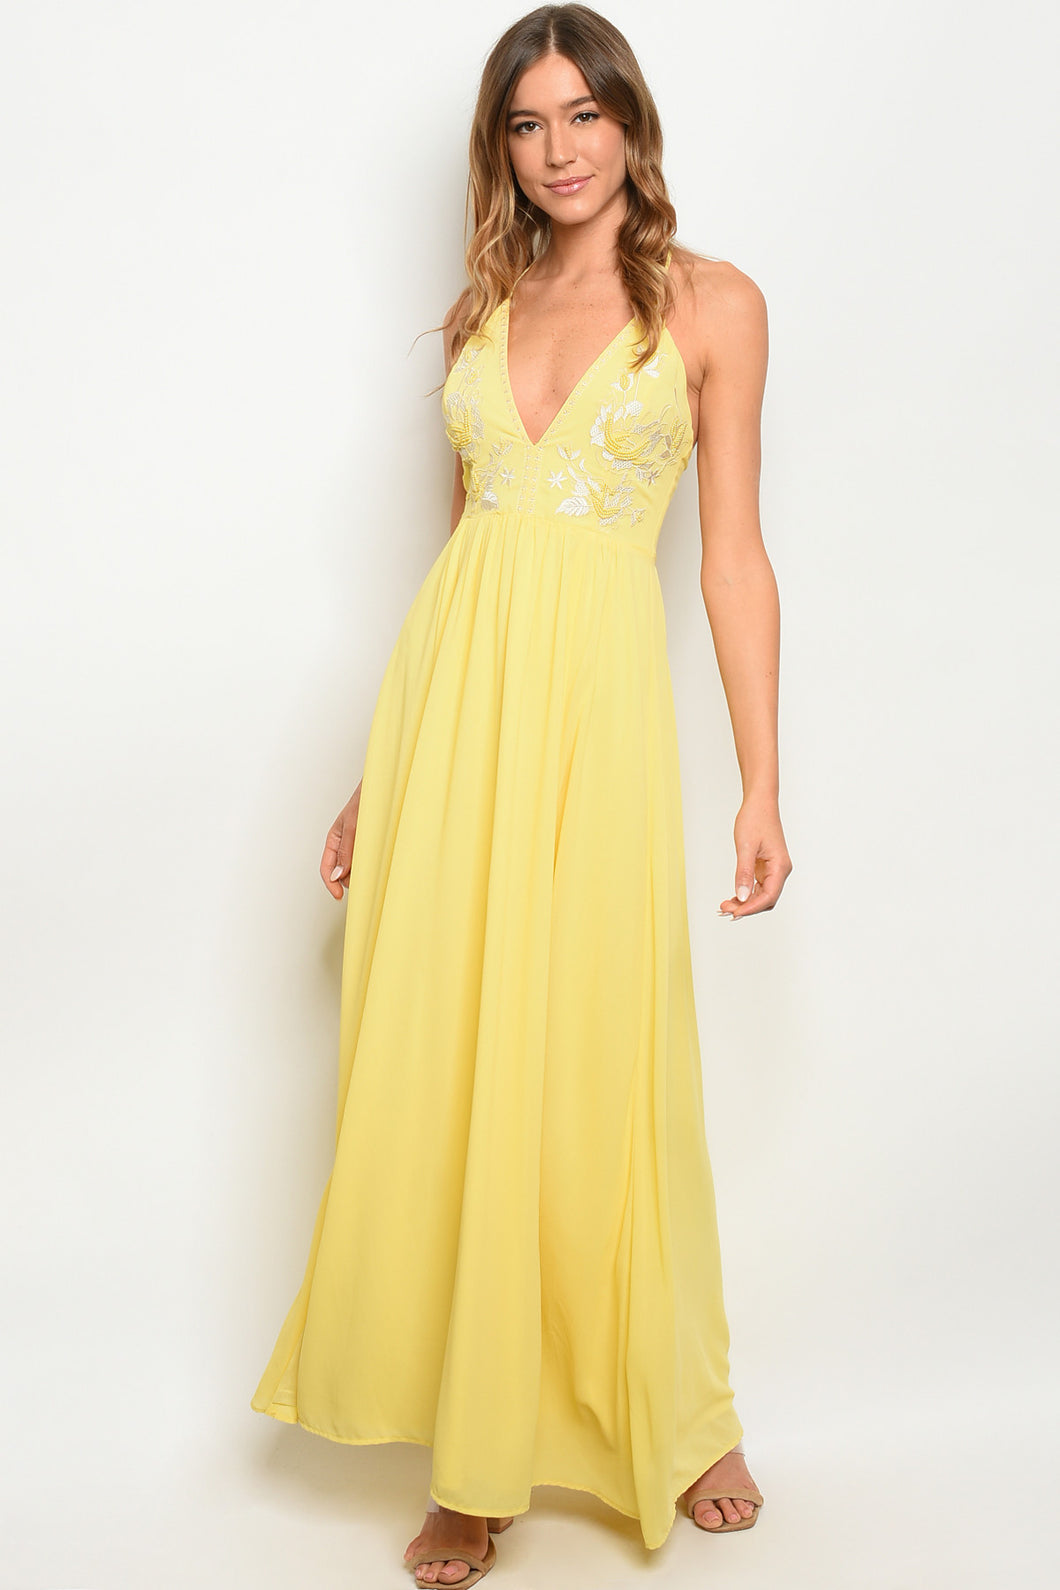 Maya Prom Gown Halter Neck Prom Dress with Embroidery W-2365-Yellow